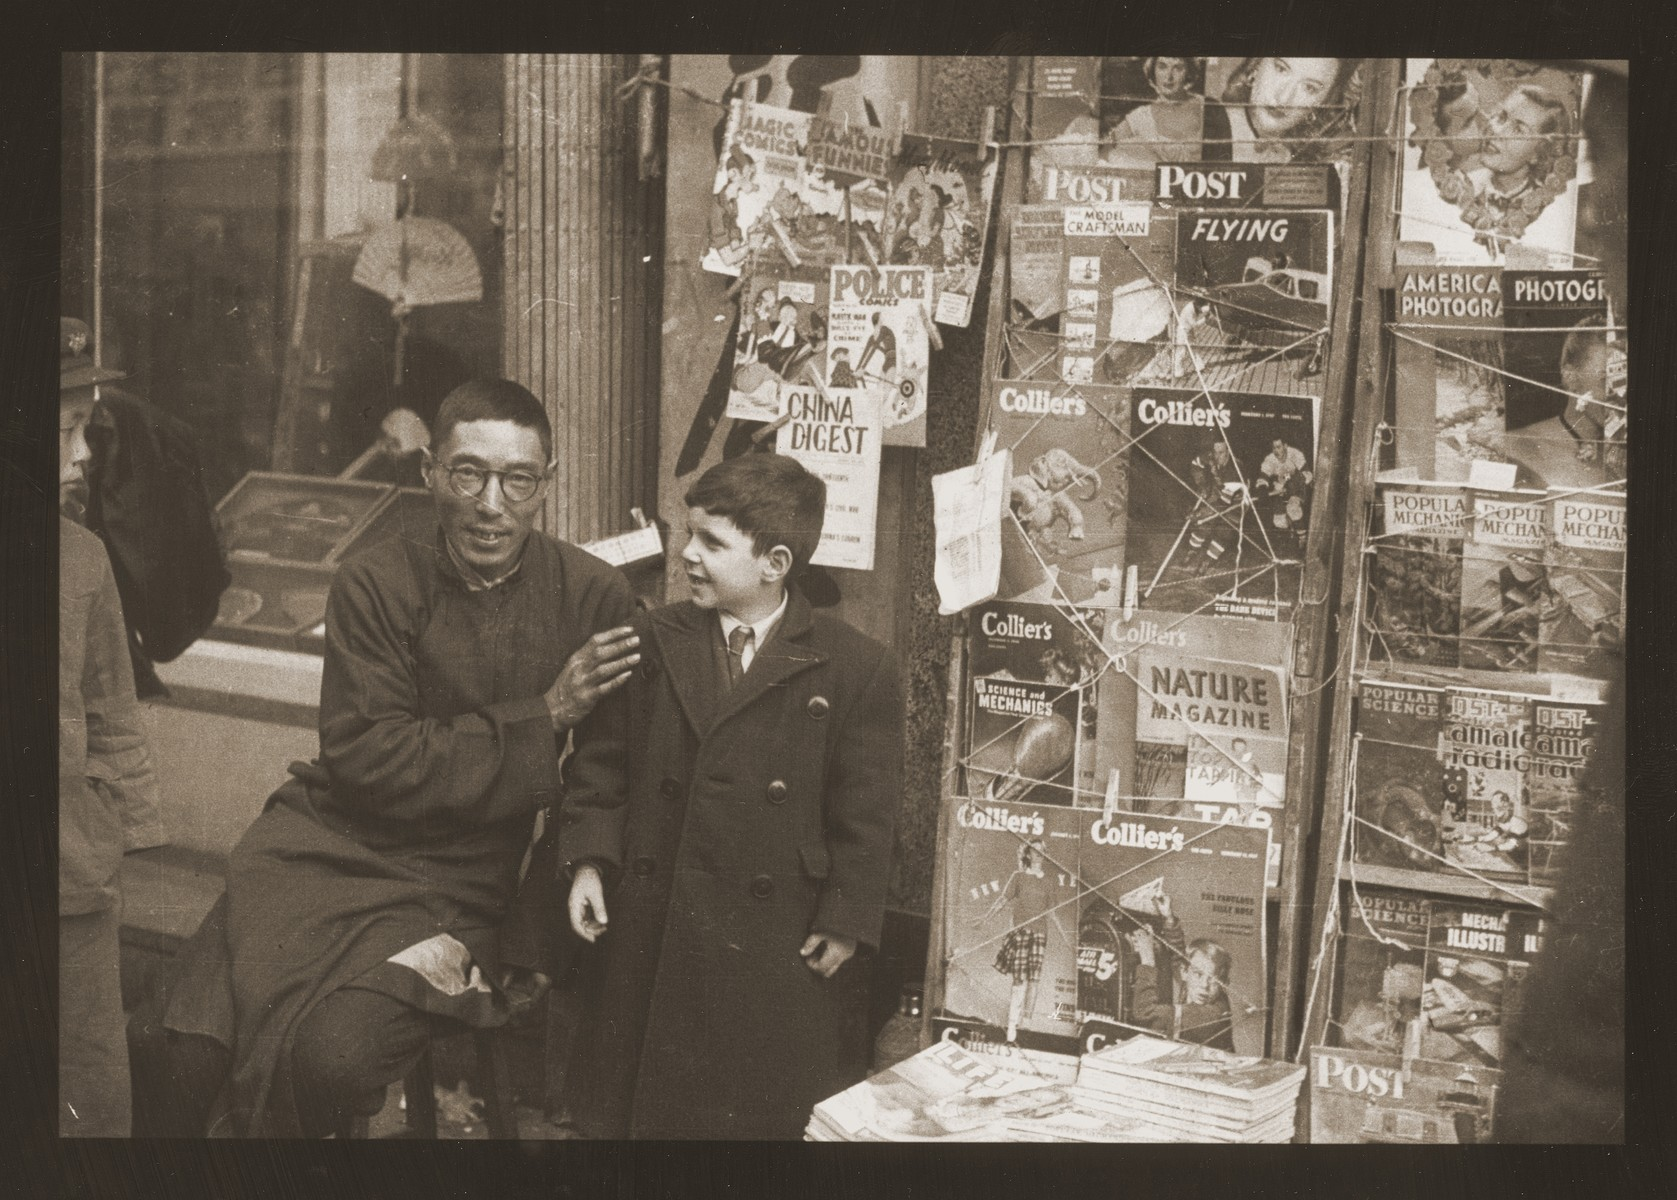 Harry Fiedler with a bookseller/fortune-teller on Tongshan Road in Hongkew.